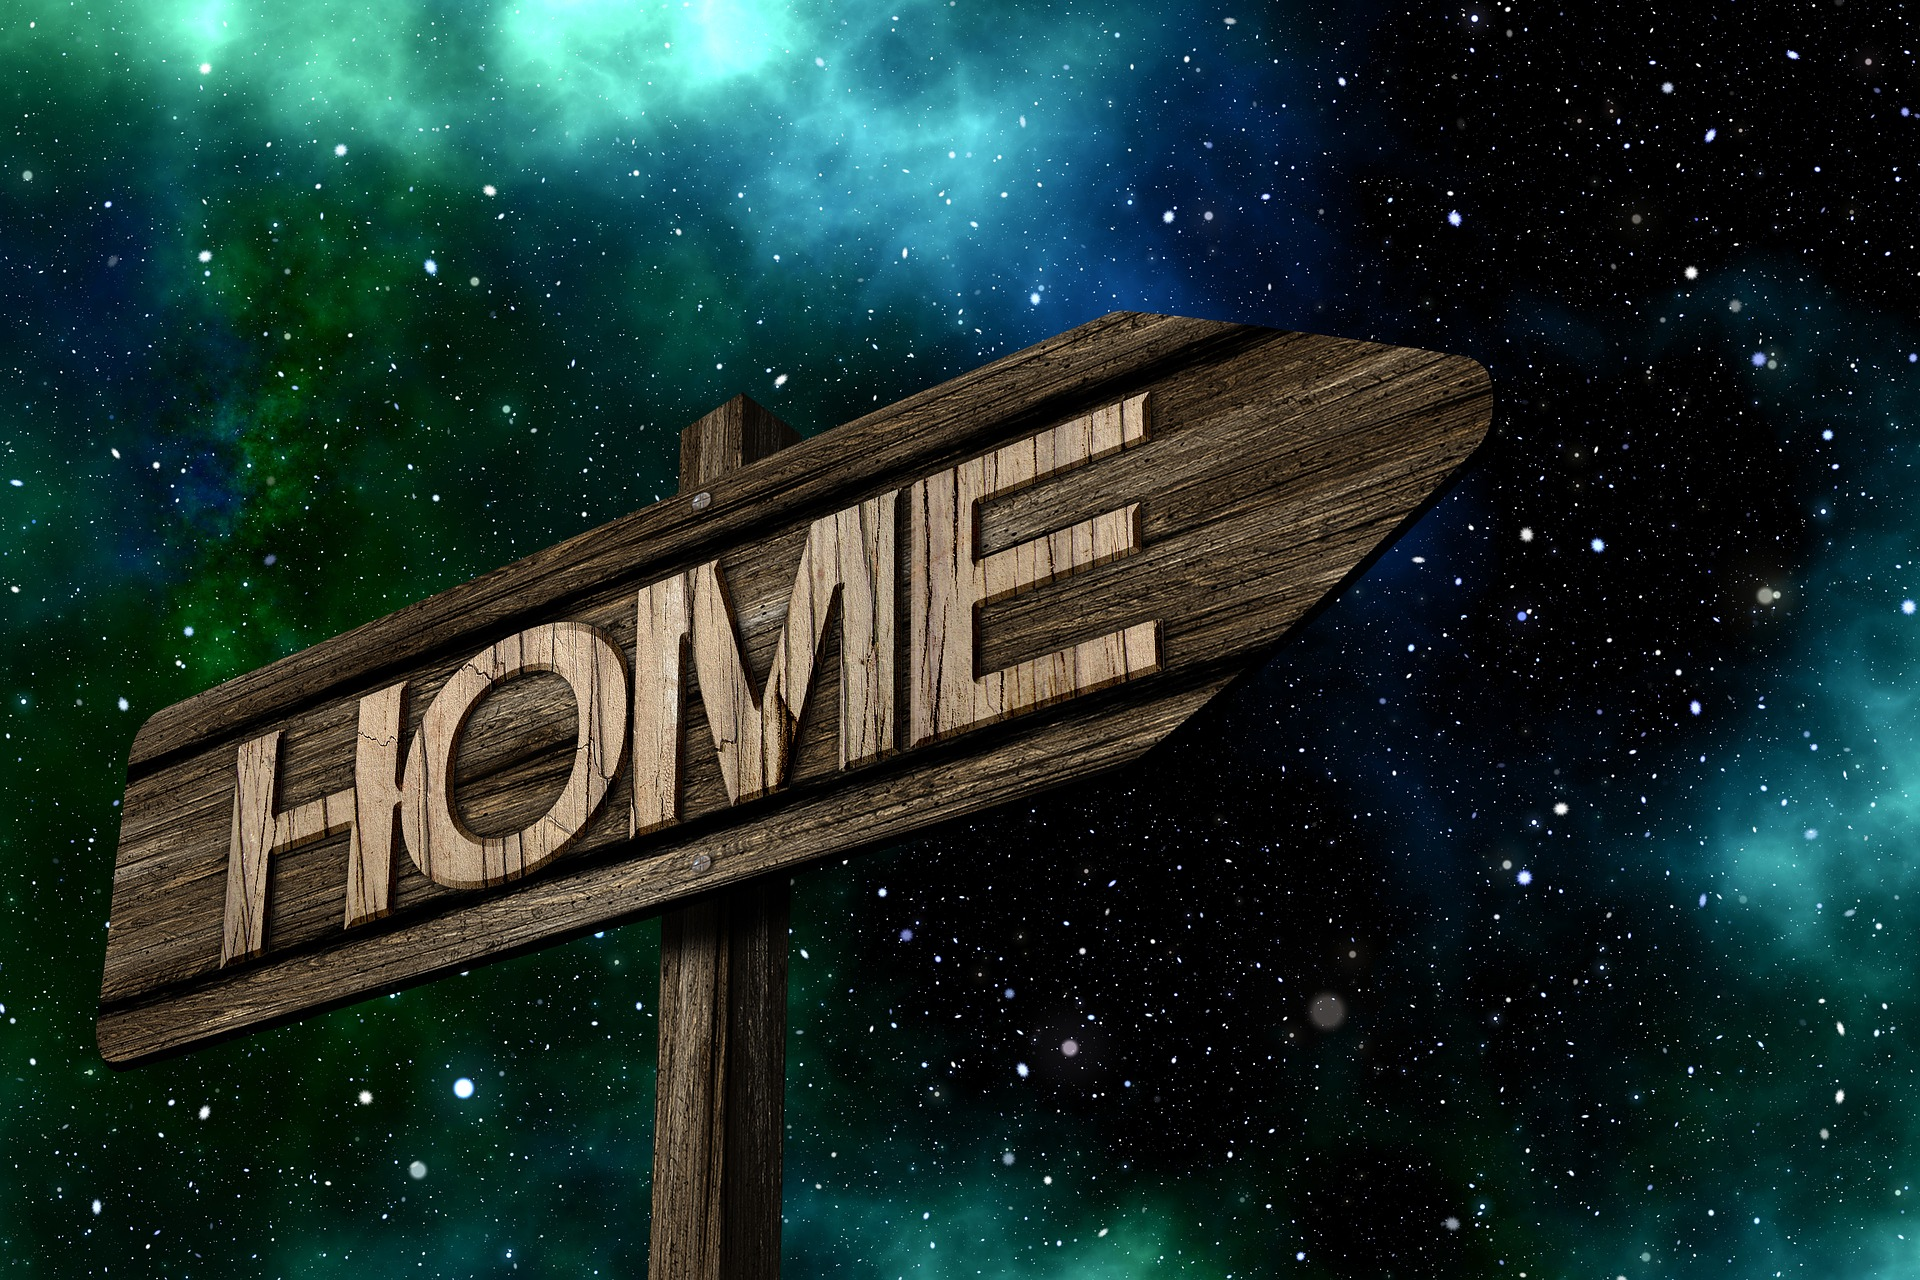 Find Your Way Home Image With Universe Background